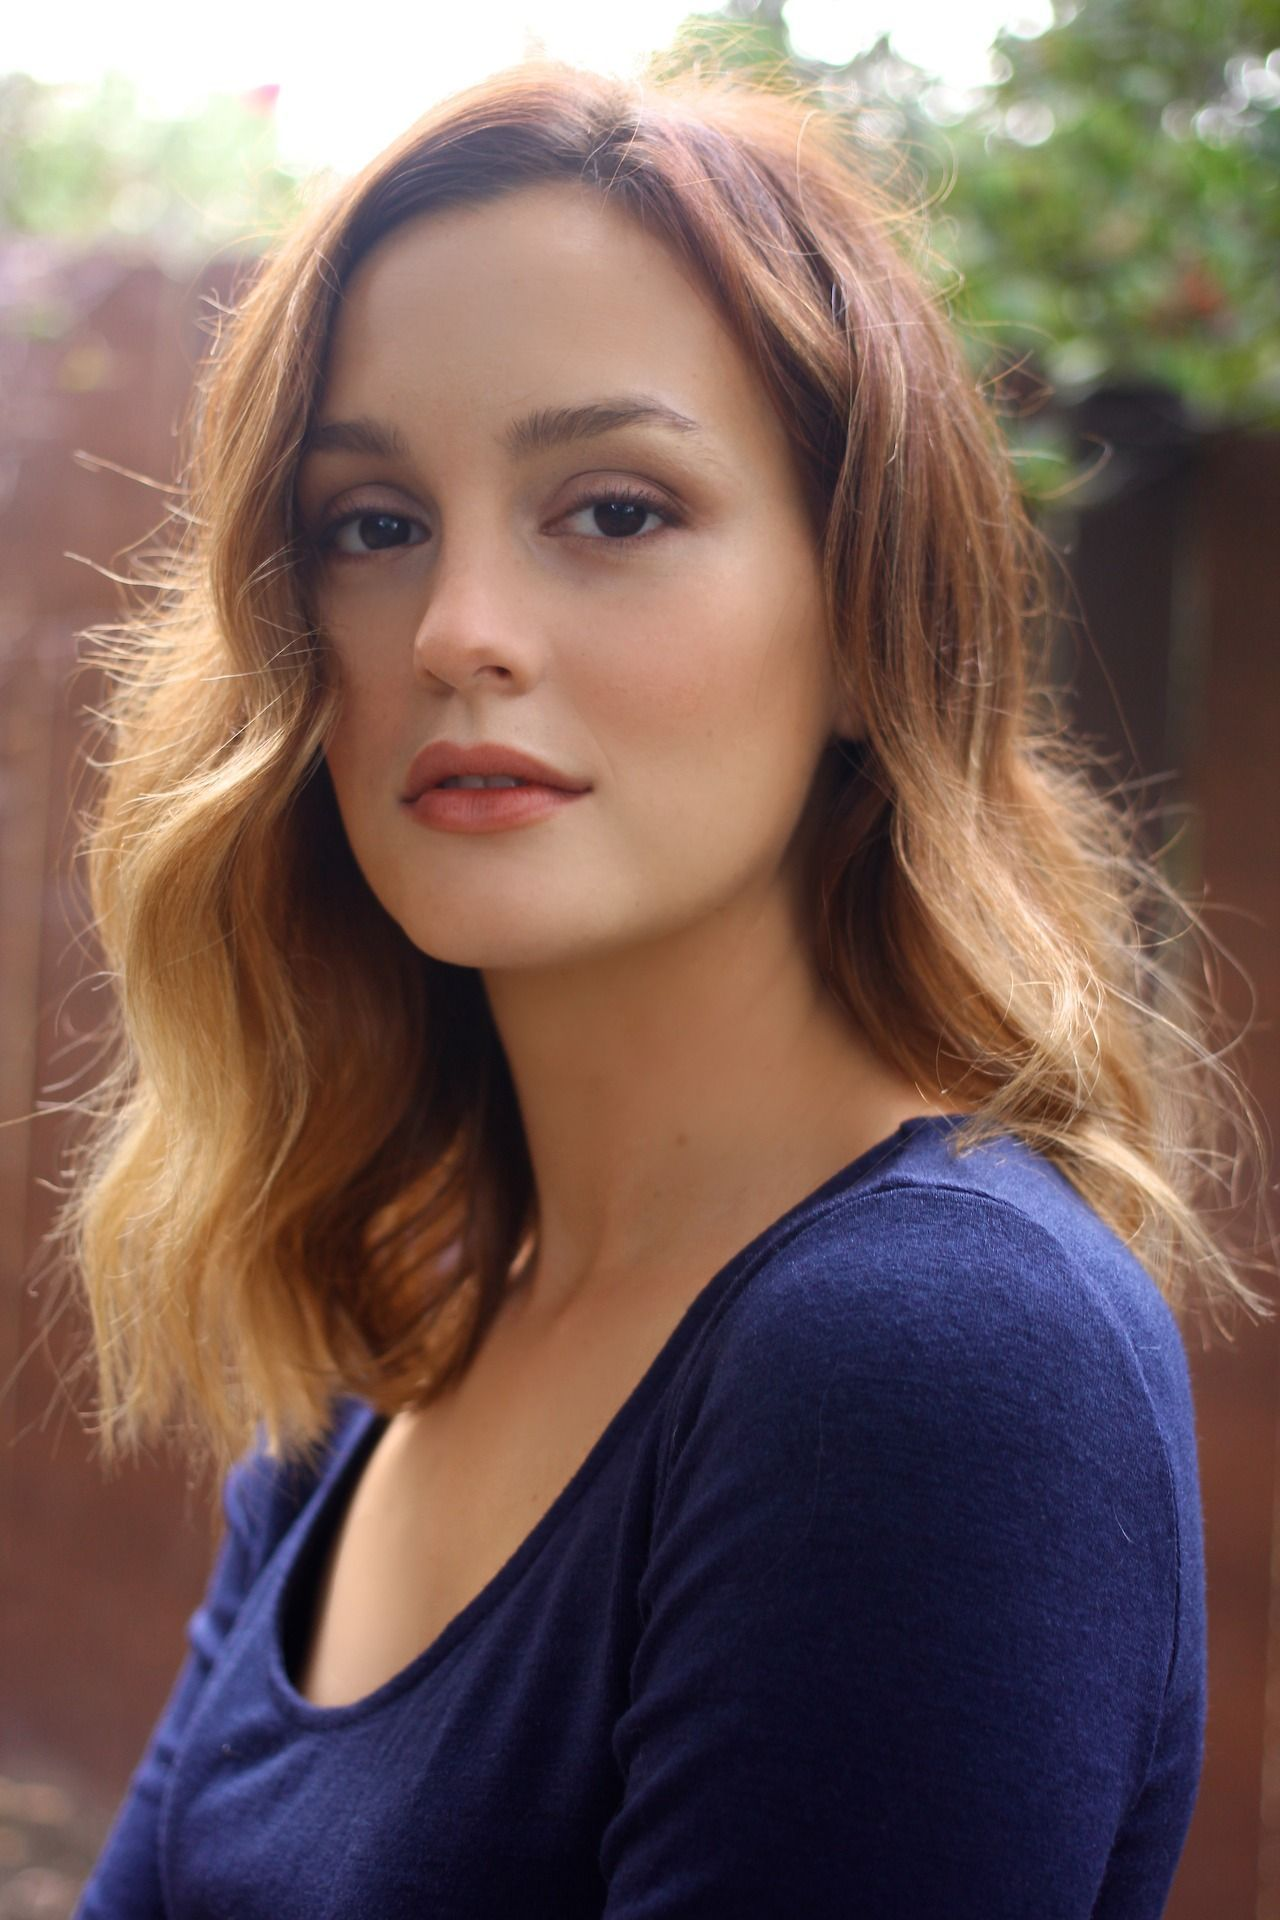 Leaked Leighton Meester nudes (85 photo), Topless, Is a cute, Boobs, bra 2015